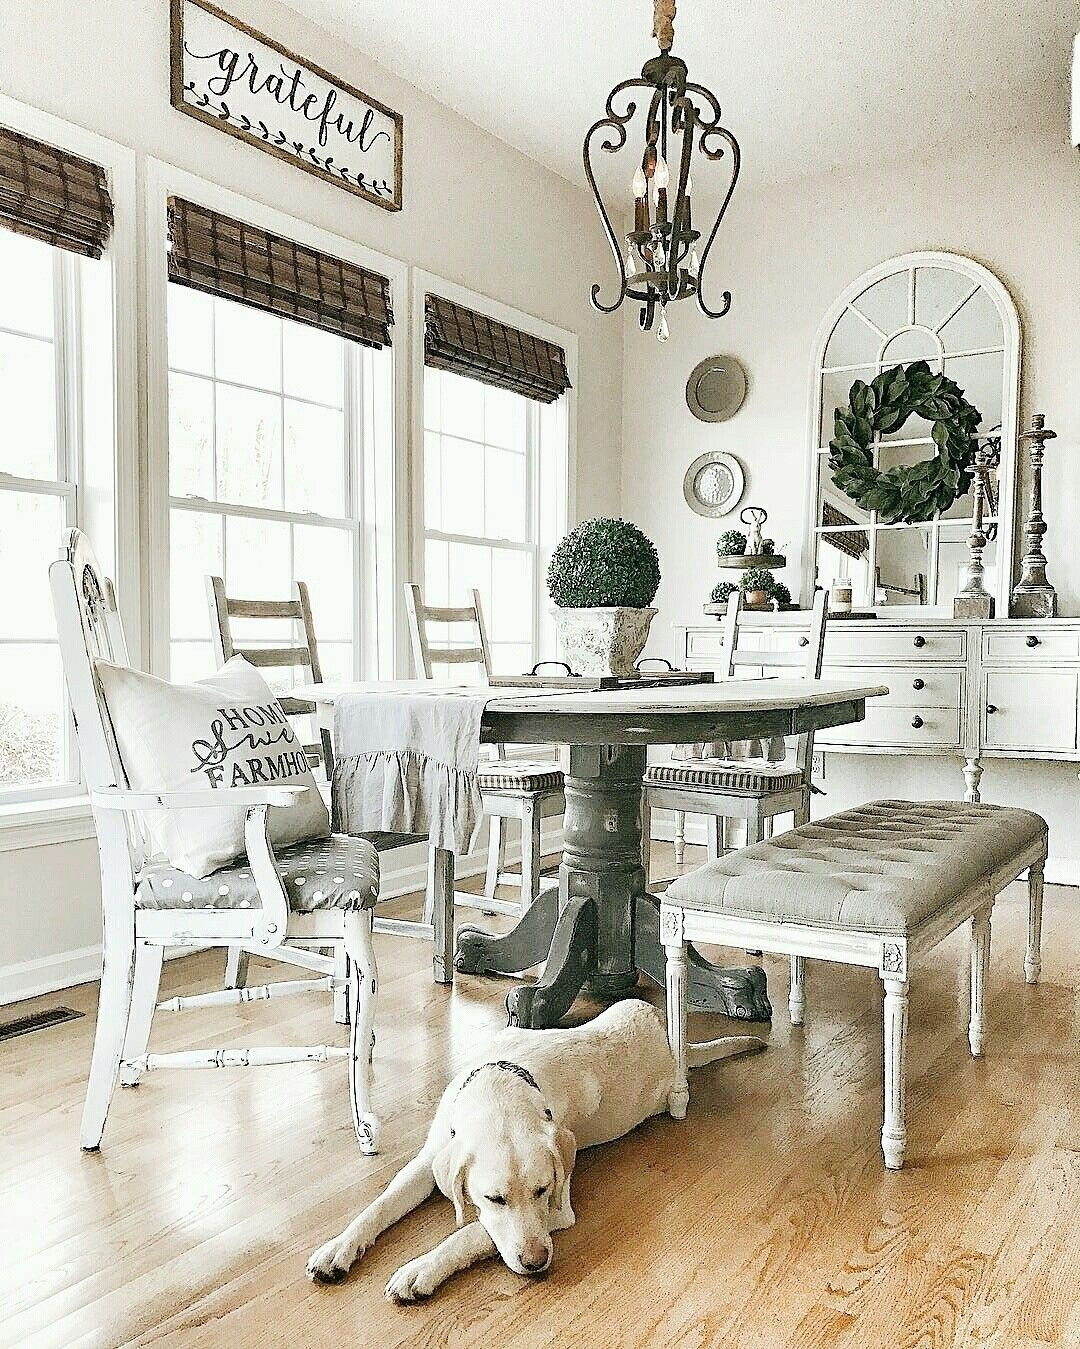 Joanna Gaines Farmhouse Dining Room Farmhouse Signs Rustic Signs Fixer Upper Style Home